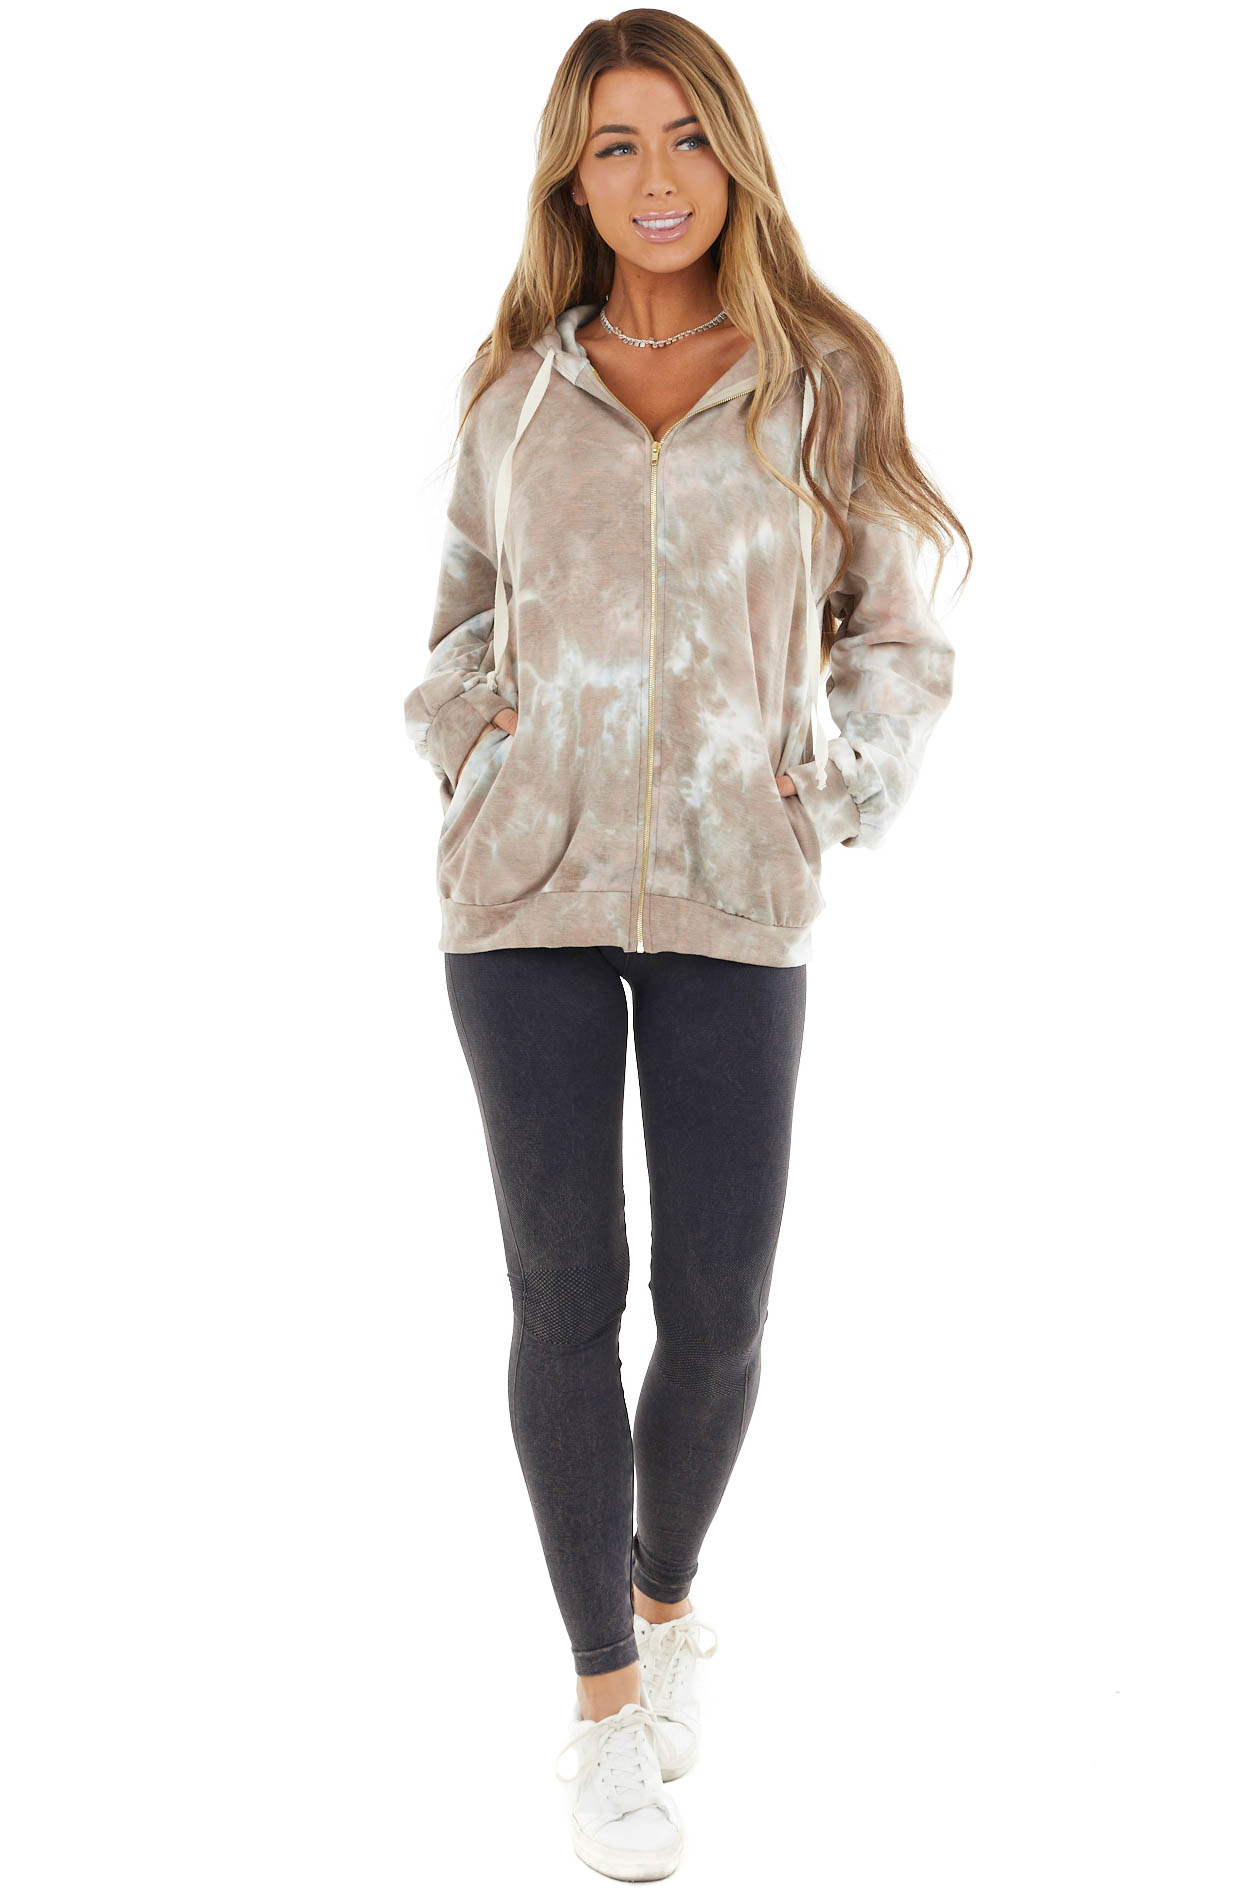 Taupe and Peach Tie Dye Zip Up Hoodie with Bubble Sleeves